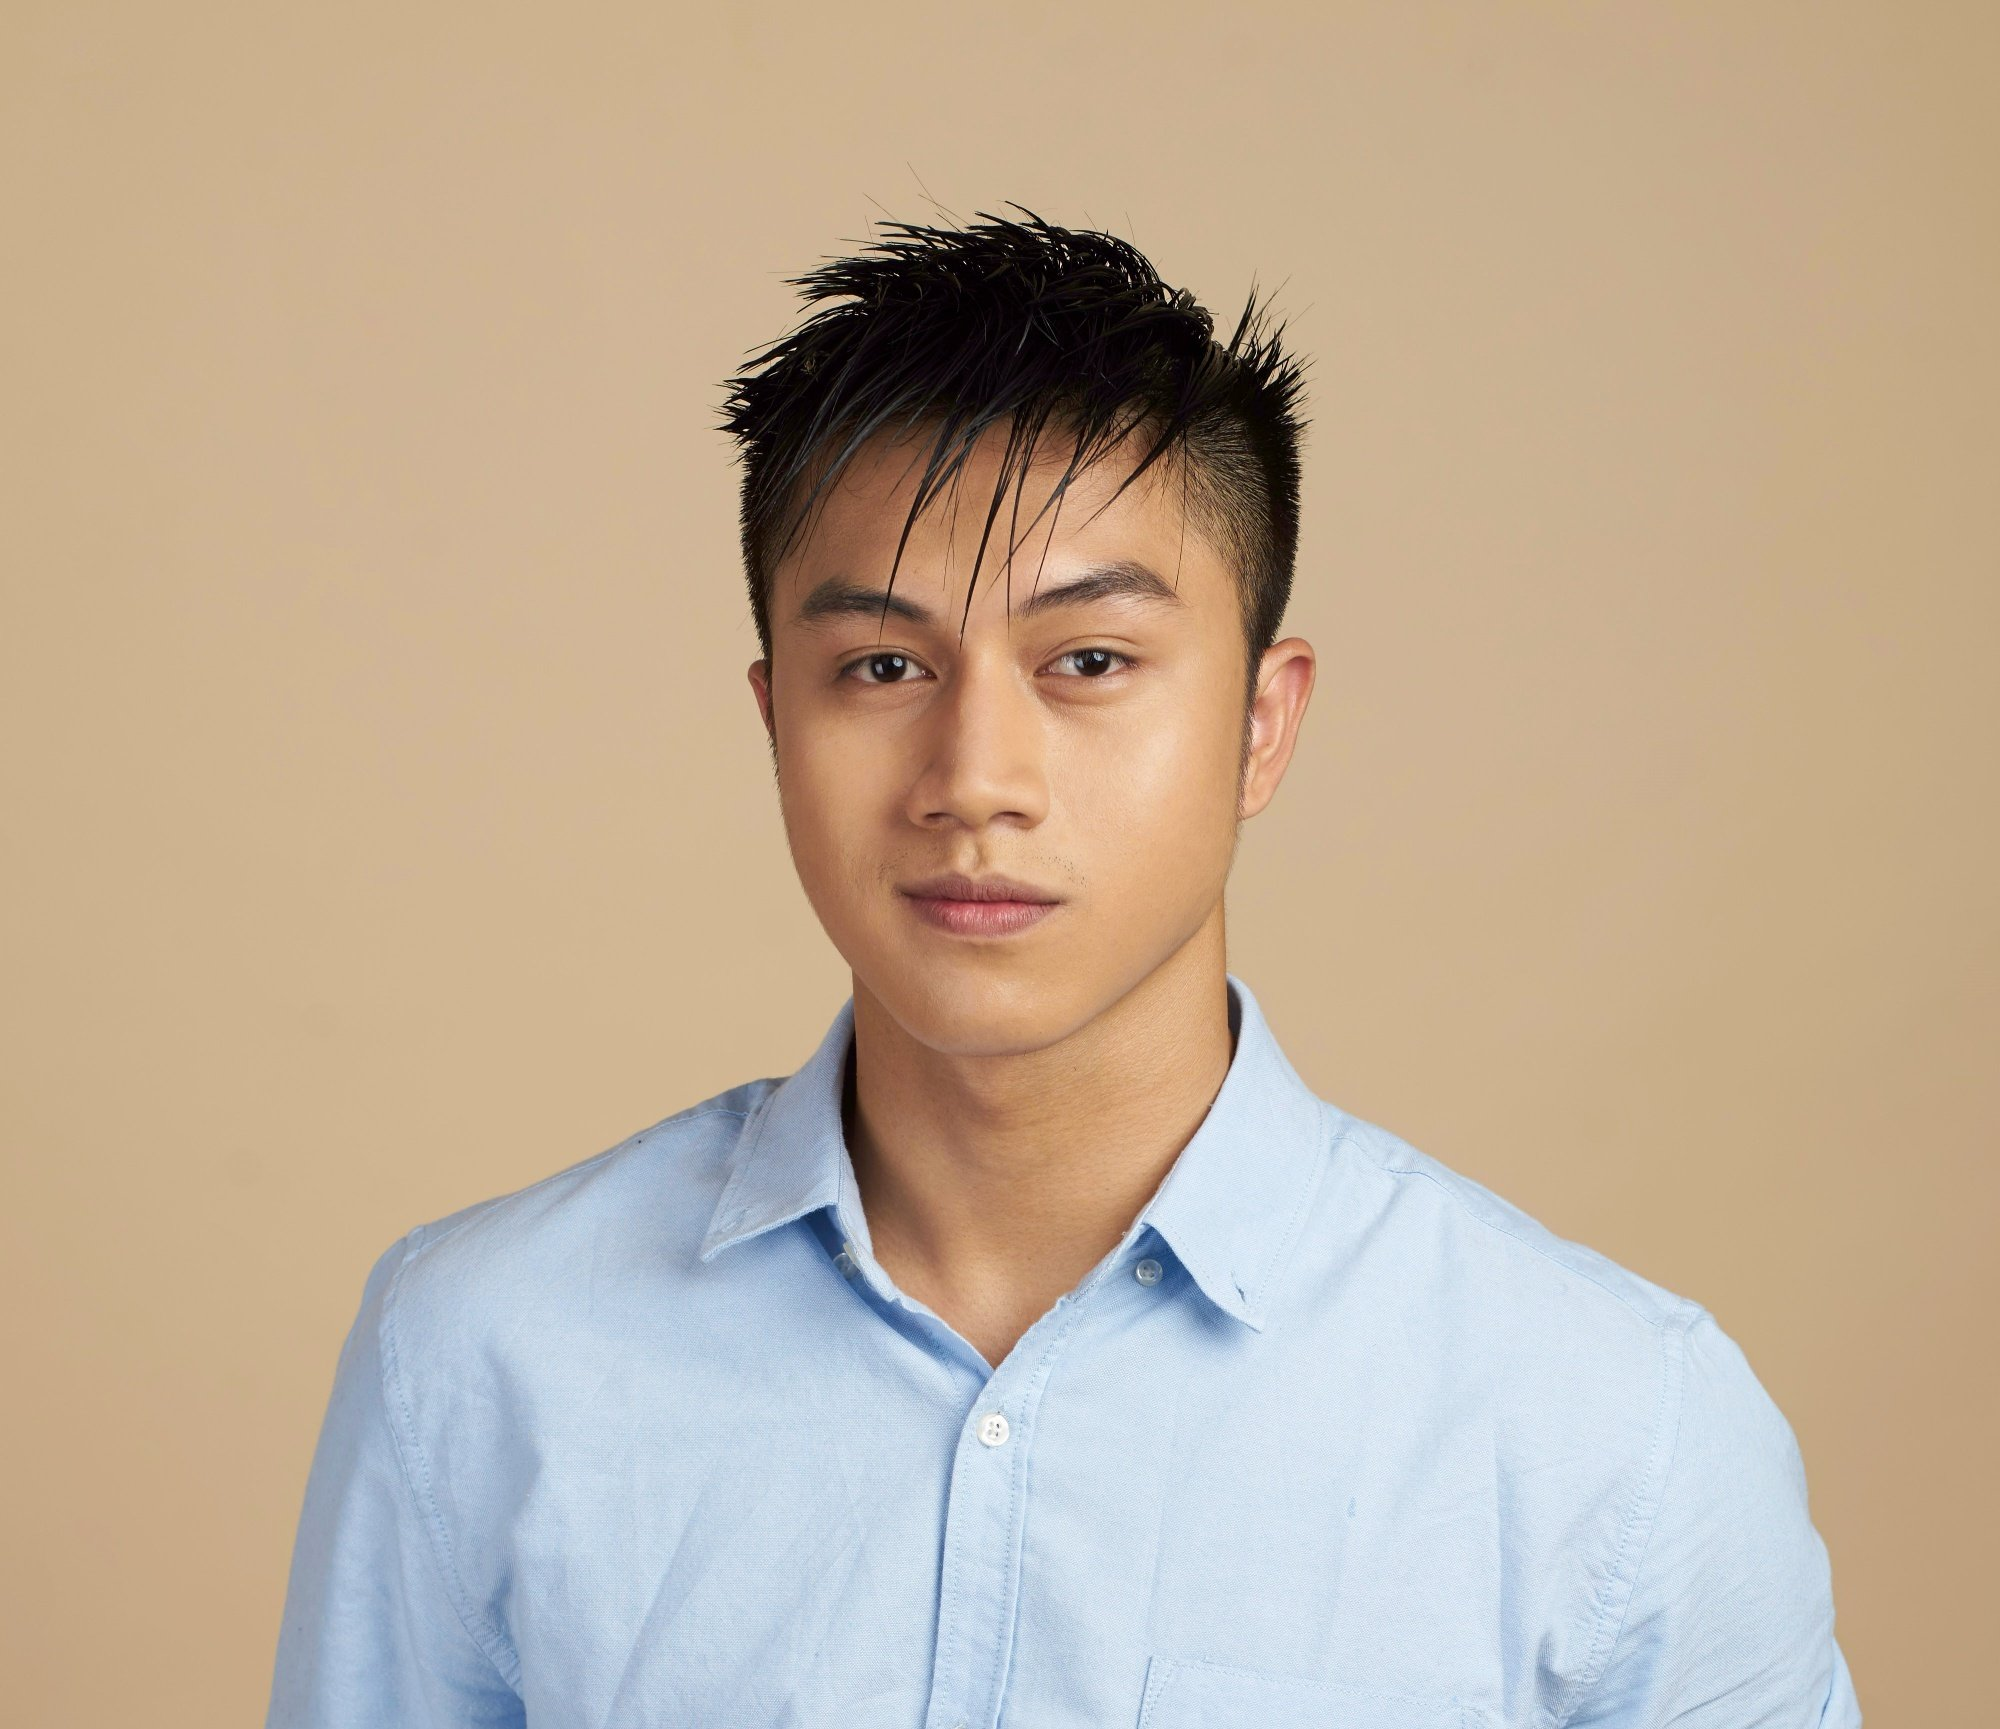 Men's grooming: Closeup shot of an Asian man with short black wet hair wearing a blue polo